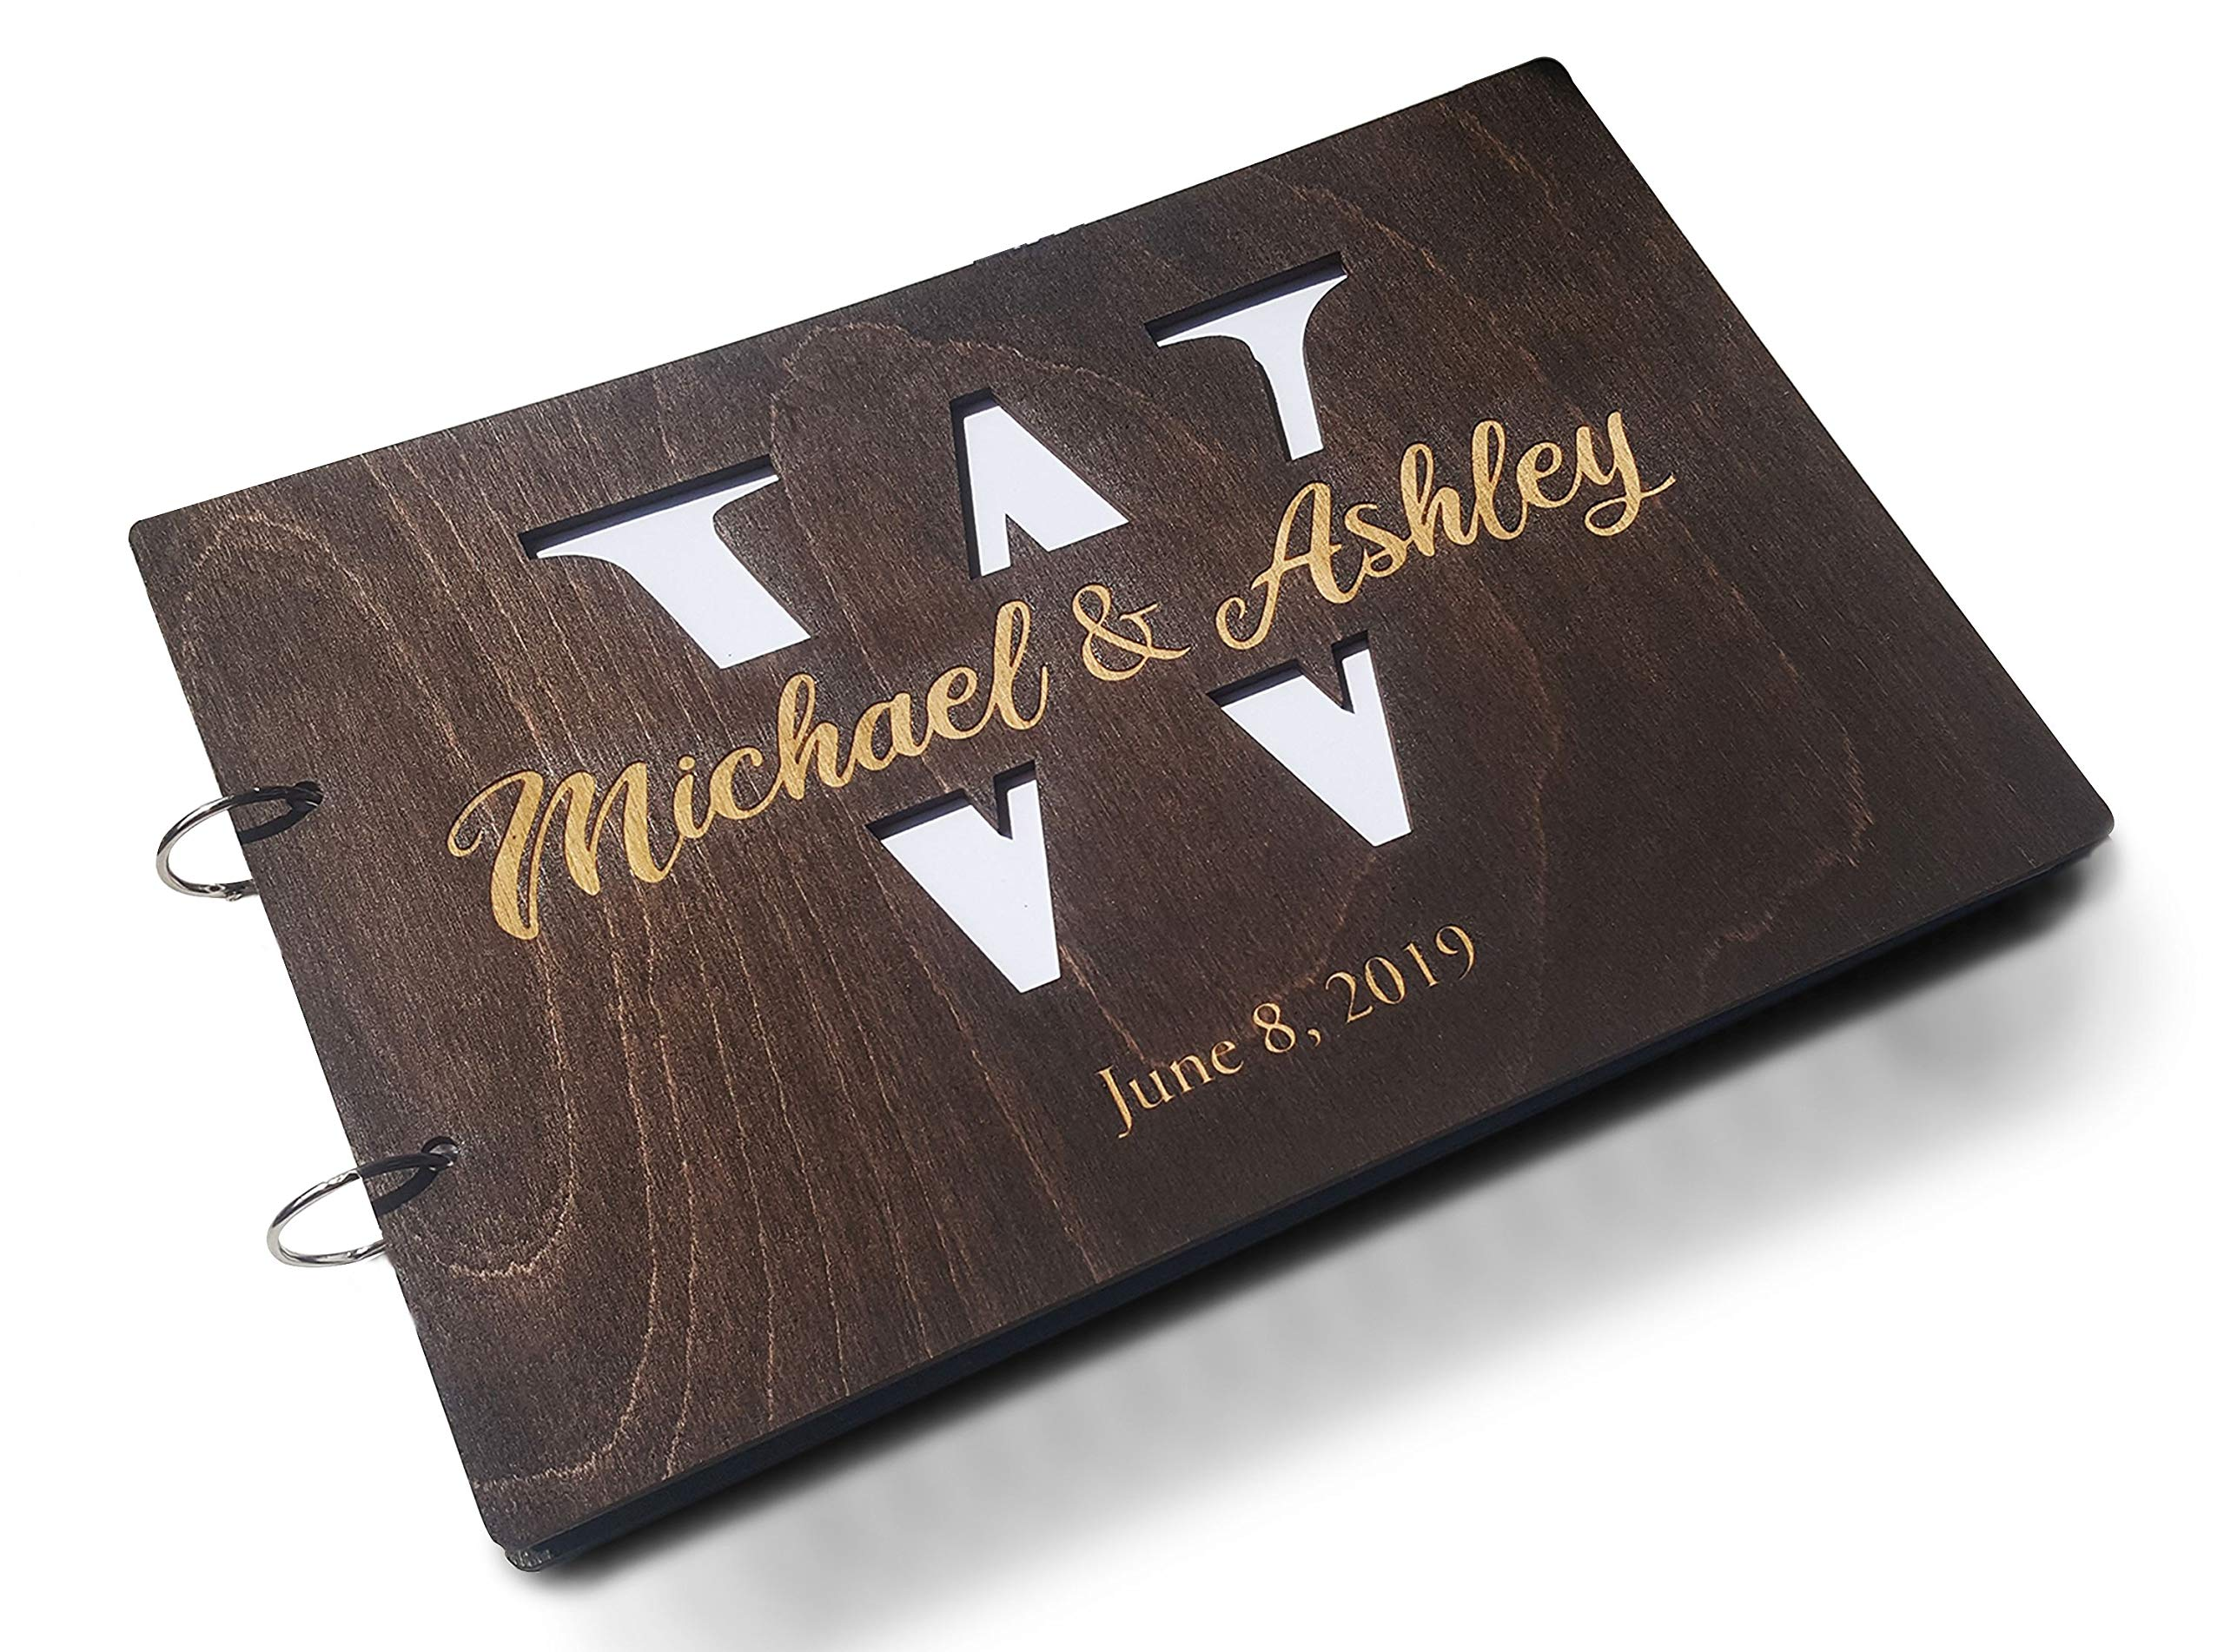 Just Customized Personalized Handmade Mr Mrs Wedding Guest Book for Bride and Groom Wood Alternative Custom Engraved Newlywed Marriage Album (Chocolate Walnut) by Just Customized (Image #1)